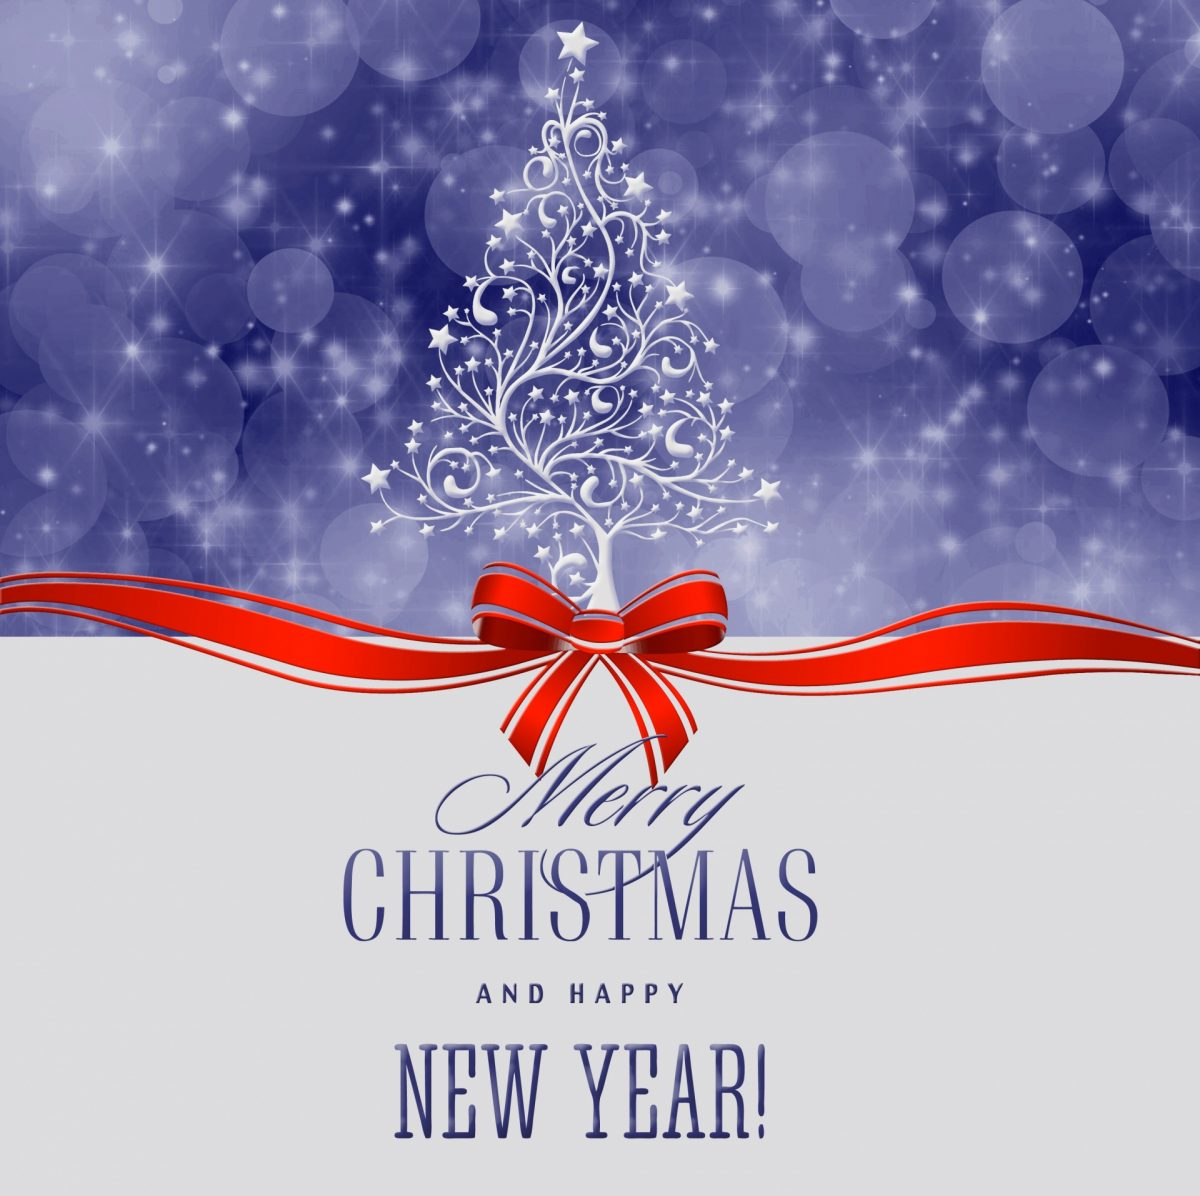 Merry Christmas from Mark Williamson Furniture